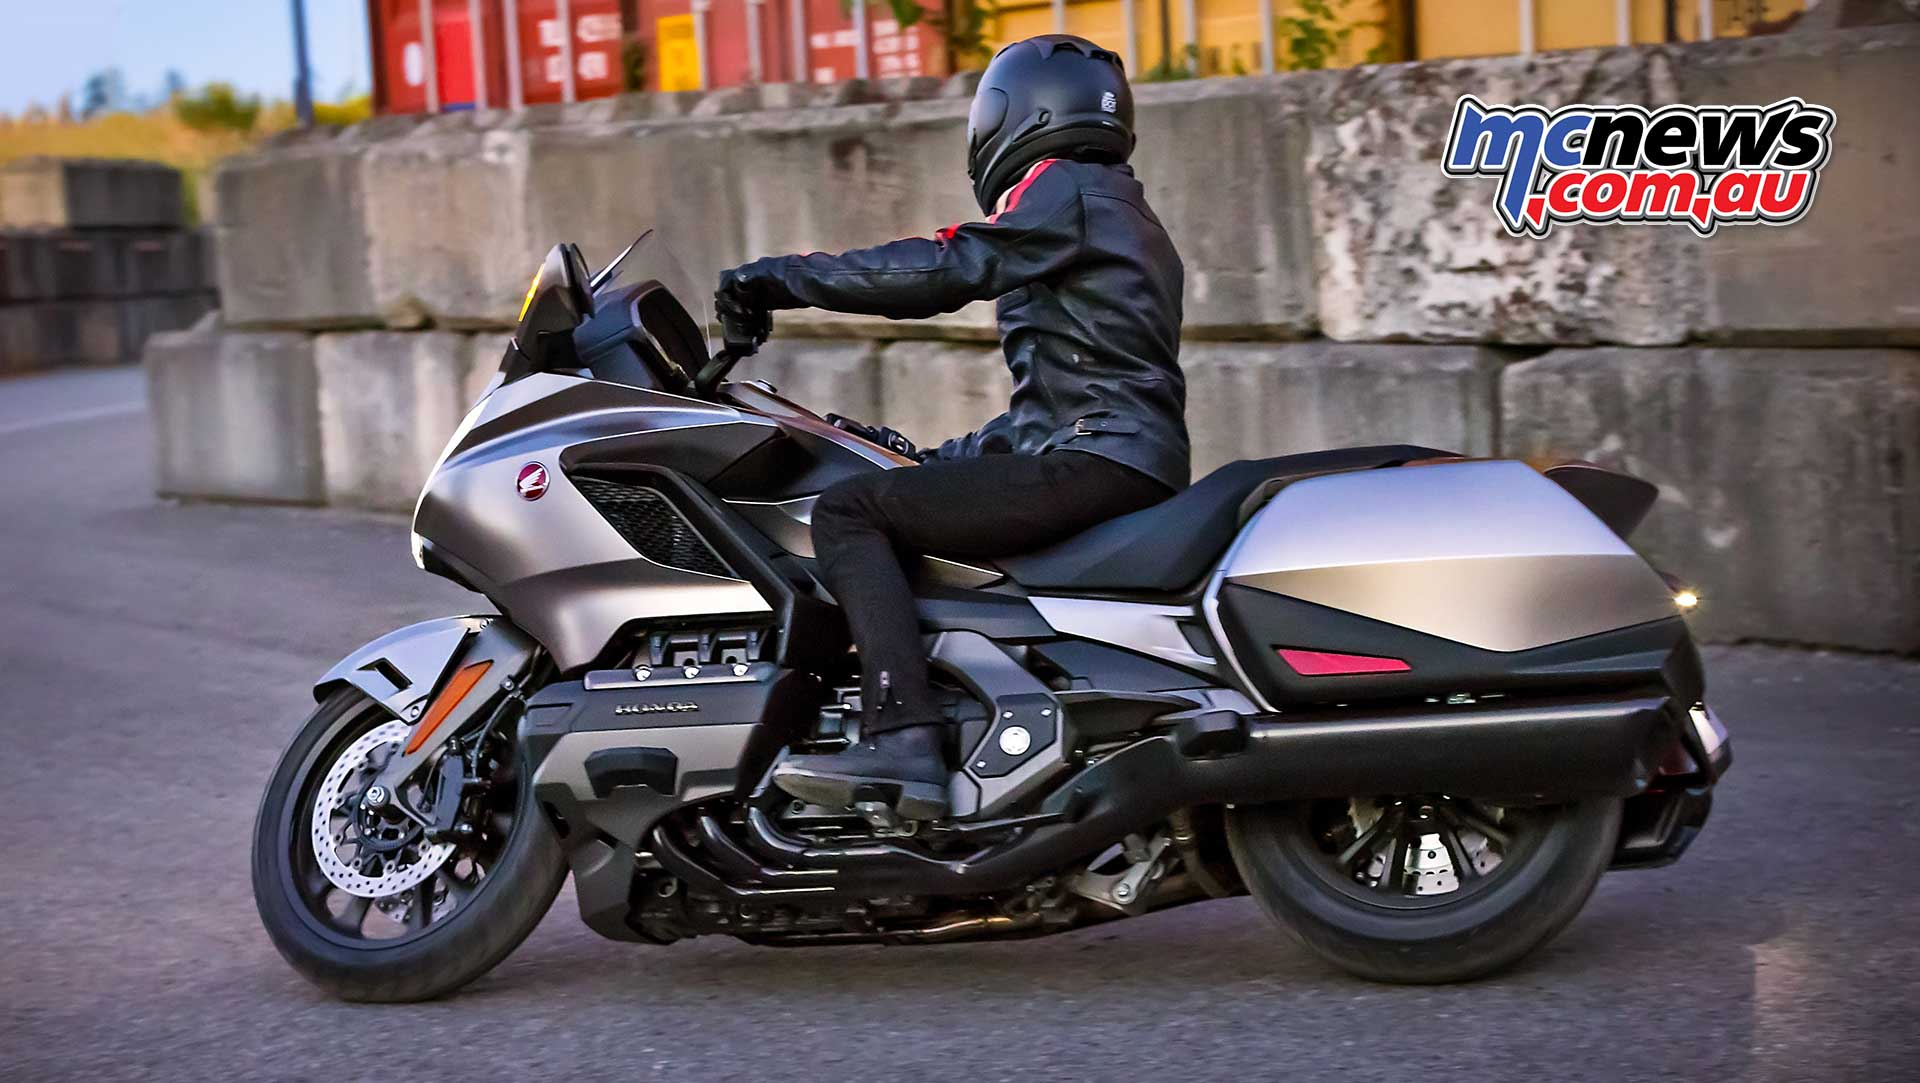 2018 Honda Gold Wing | 48kg lighter | Full Details! | MCNews com au